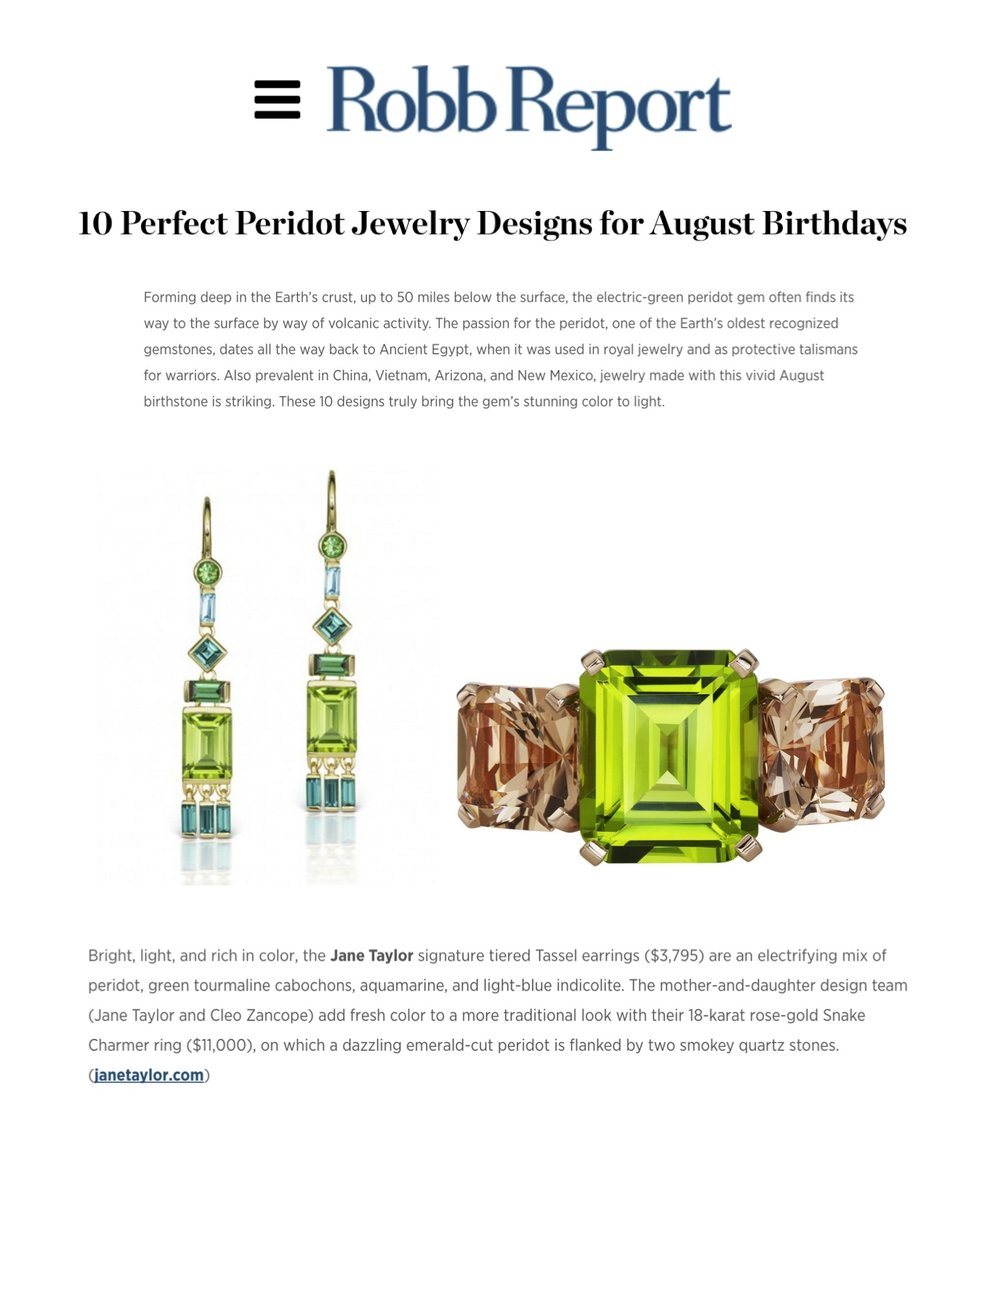 Jane Taylor Jewelry in Robb Report